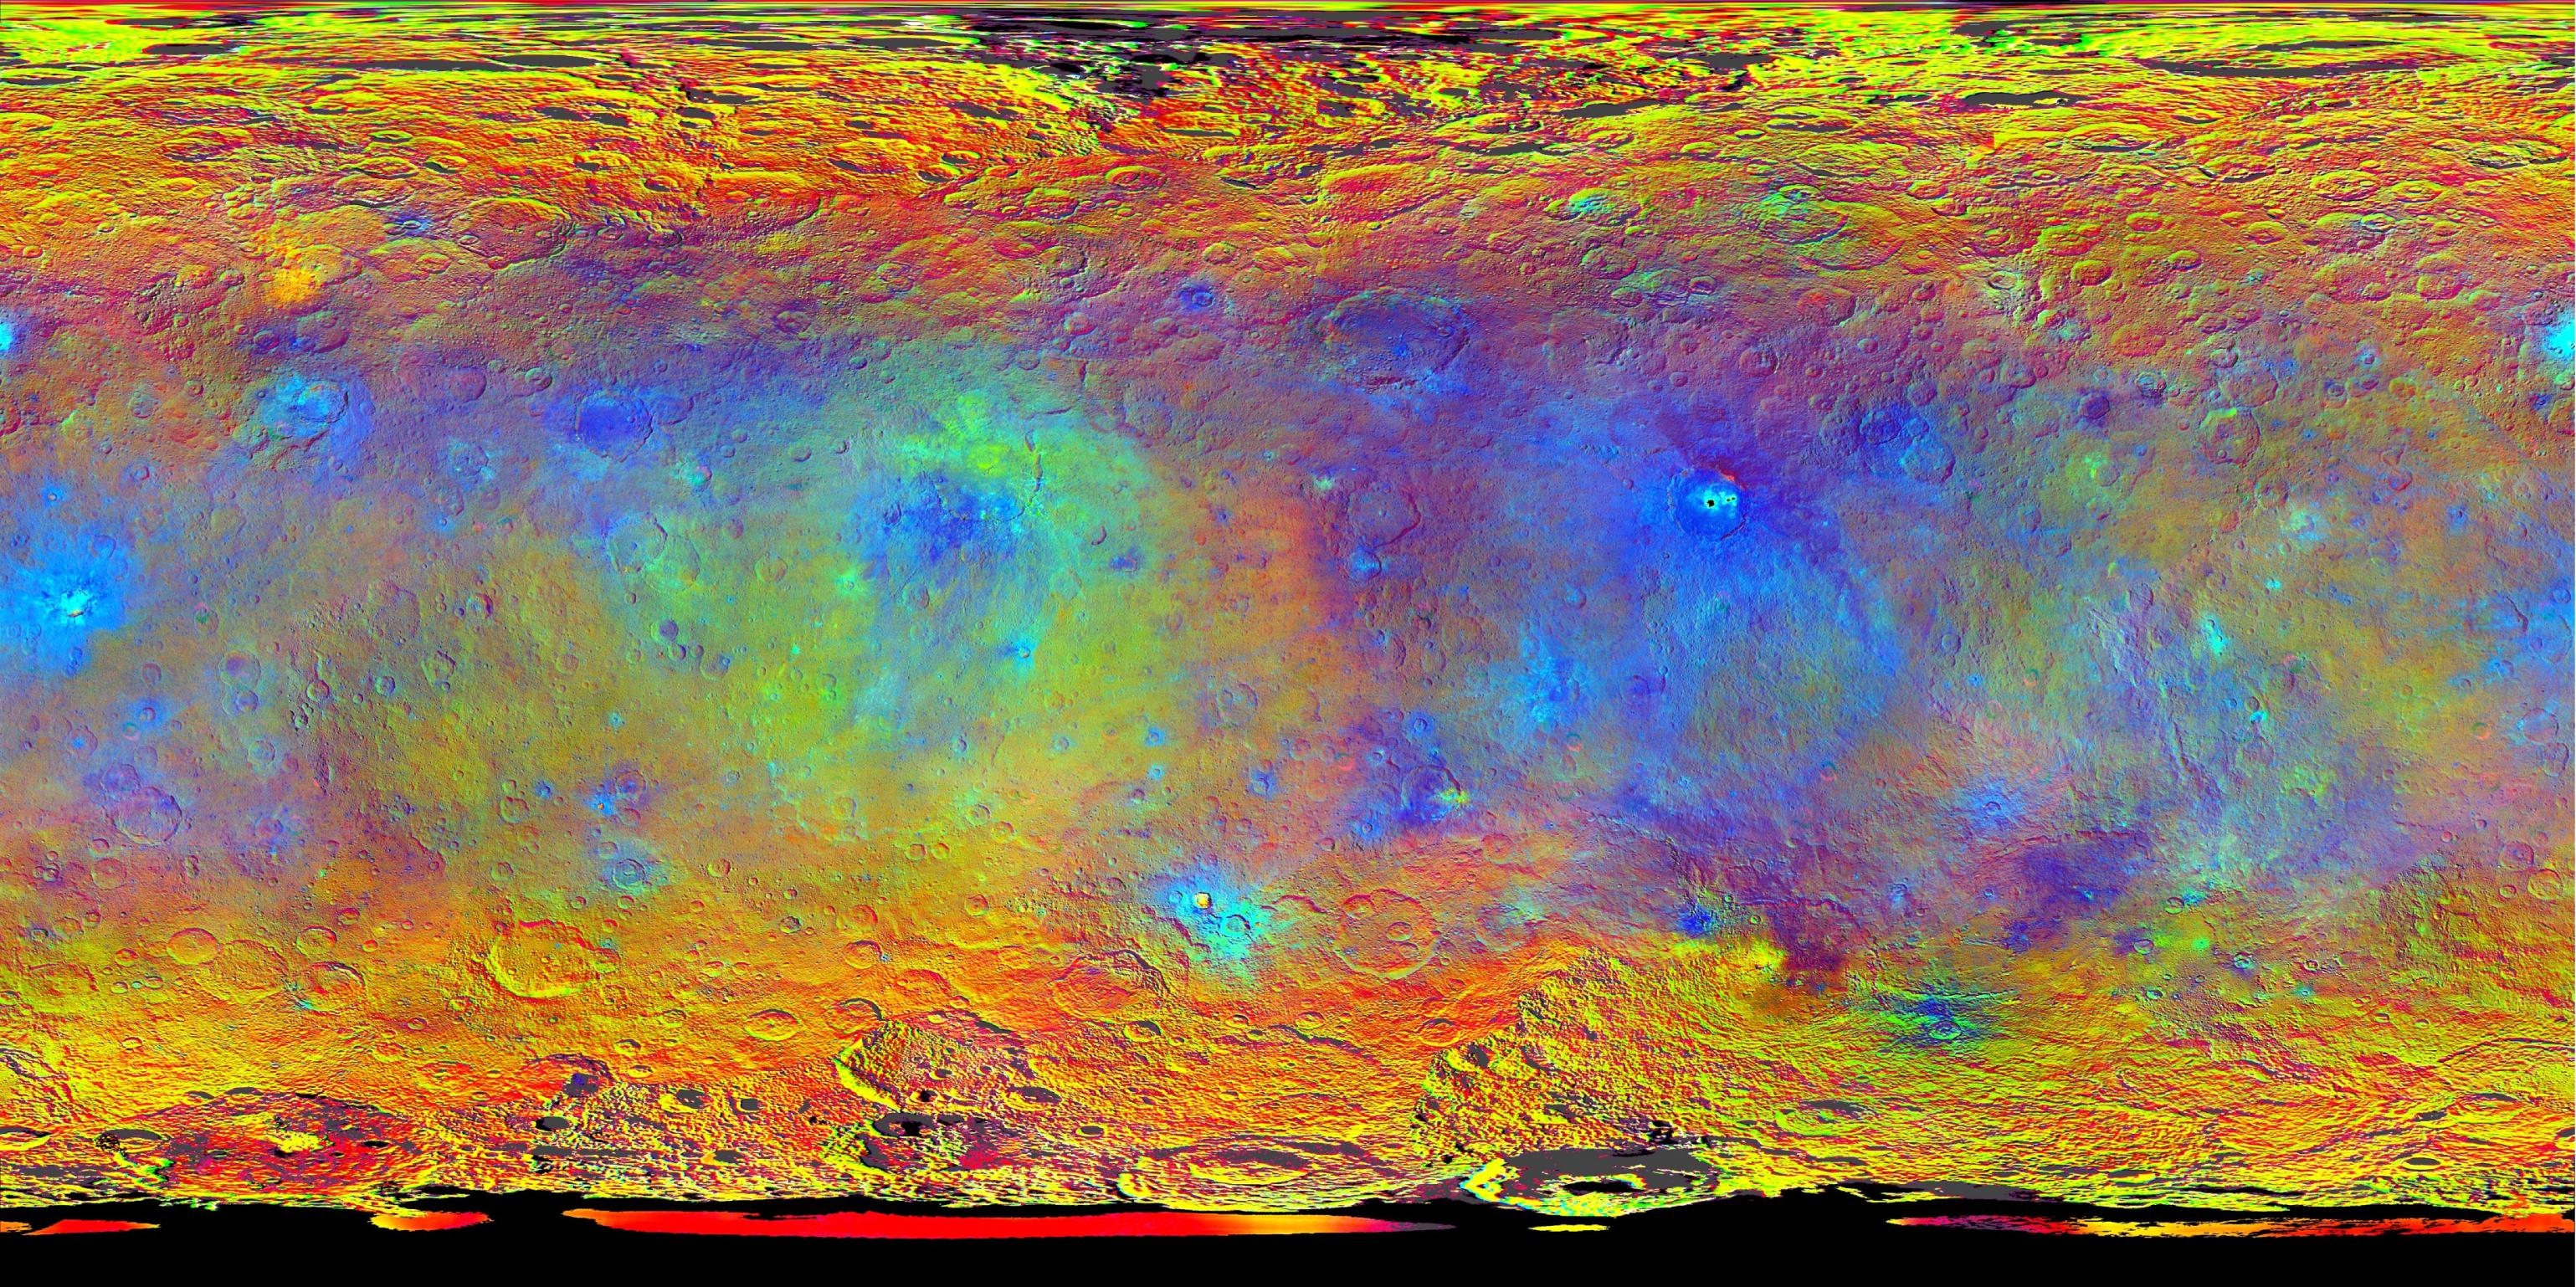 Mission Dawn/Ceres - Page 3 PIA19977